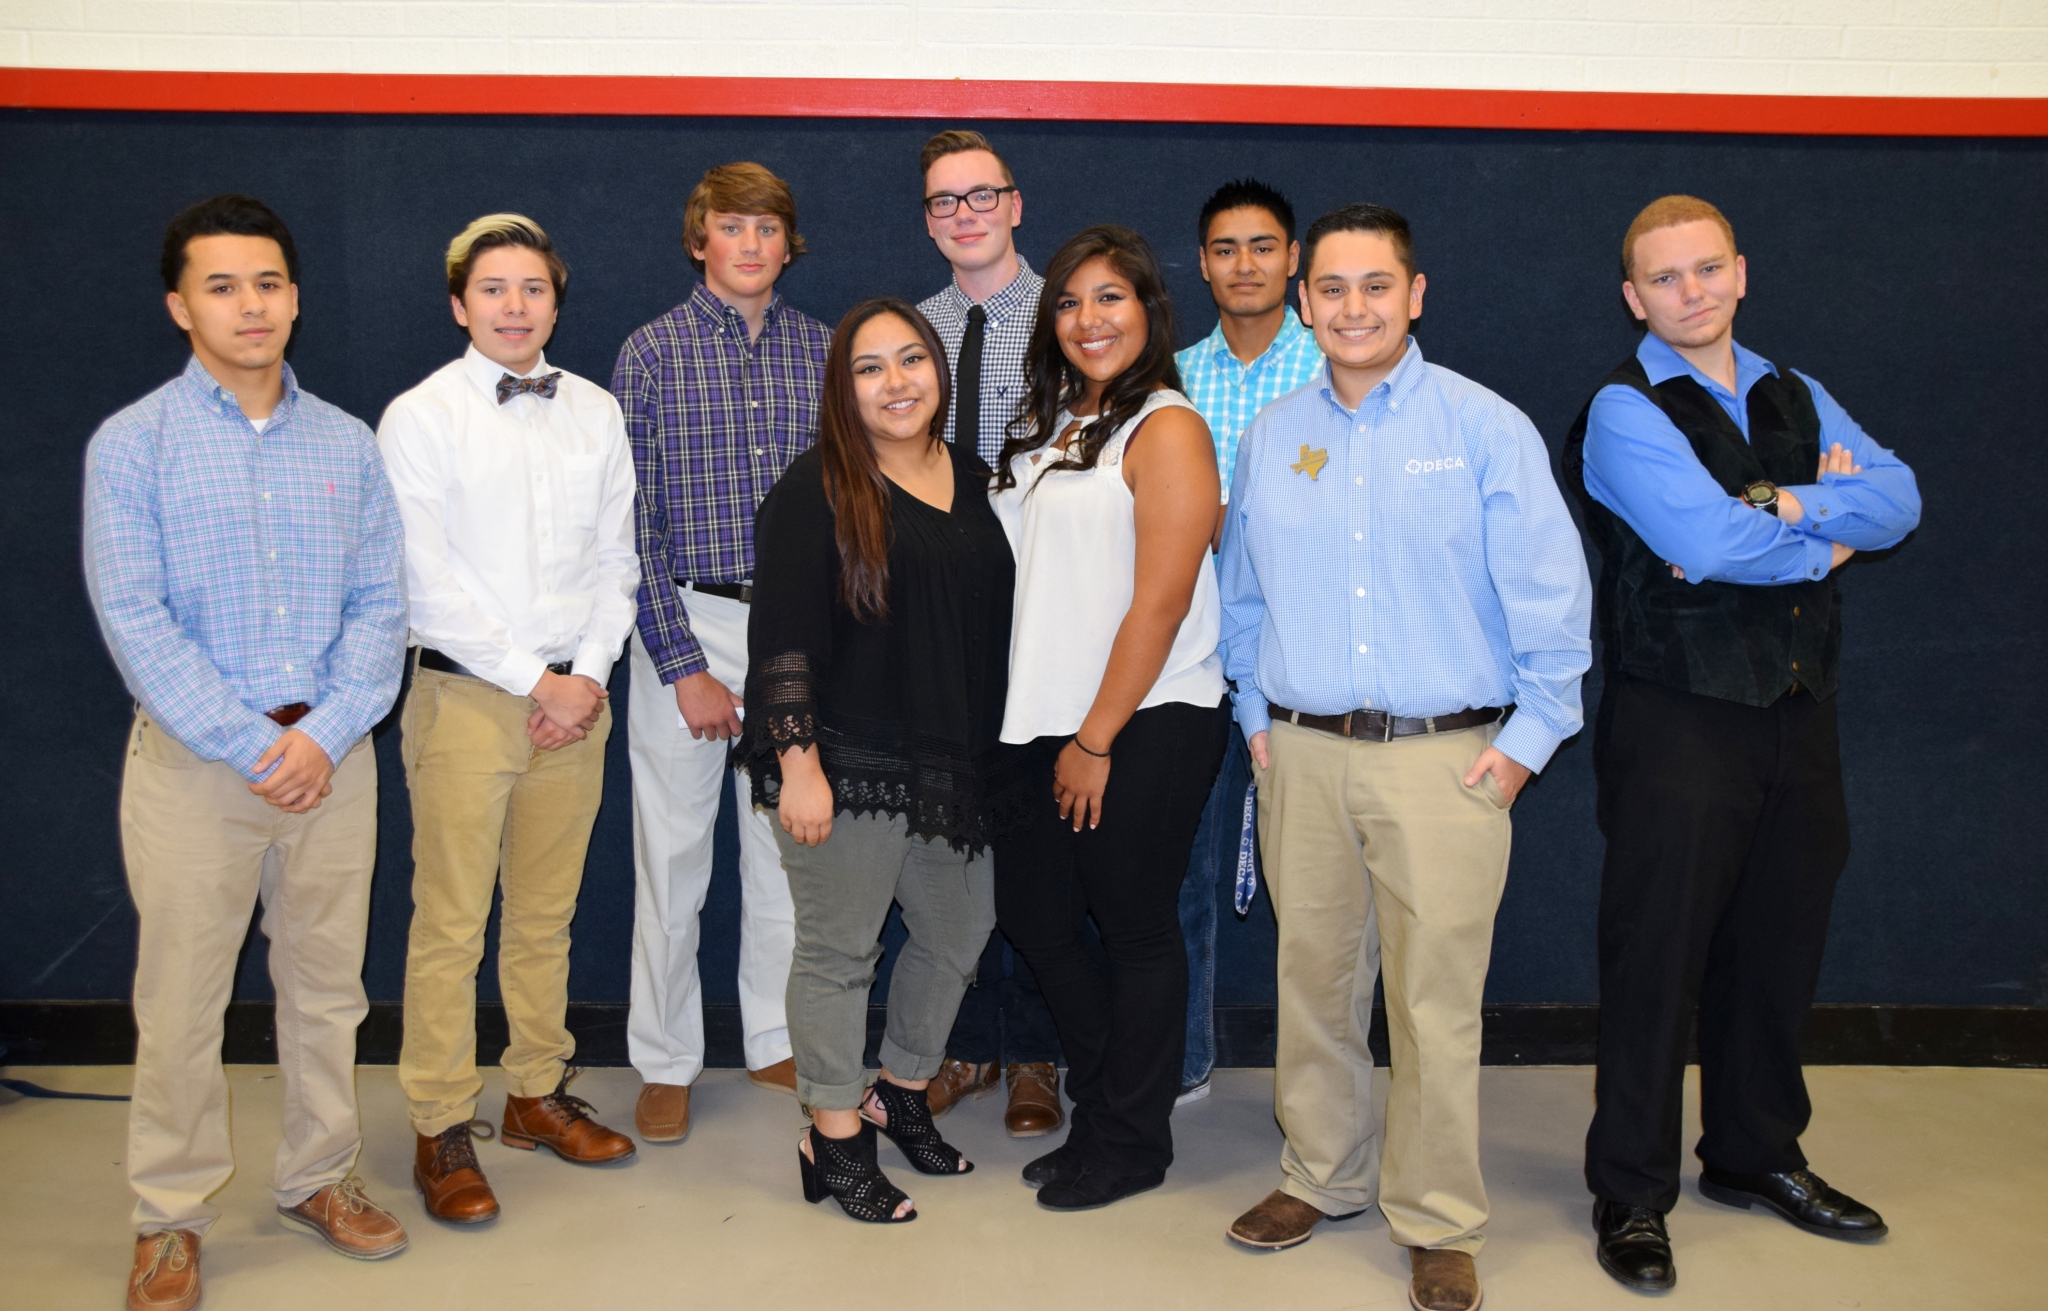 Reagor Dykes Plainview Texas >> PHS students Dress for Success - Plainview Daily Herald